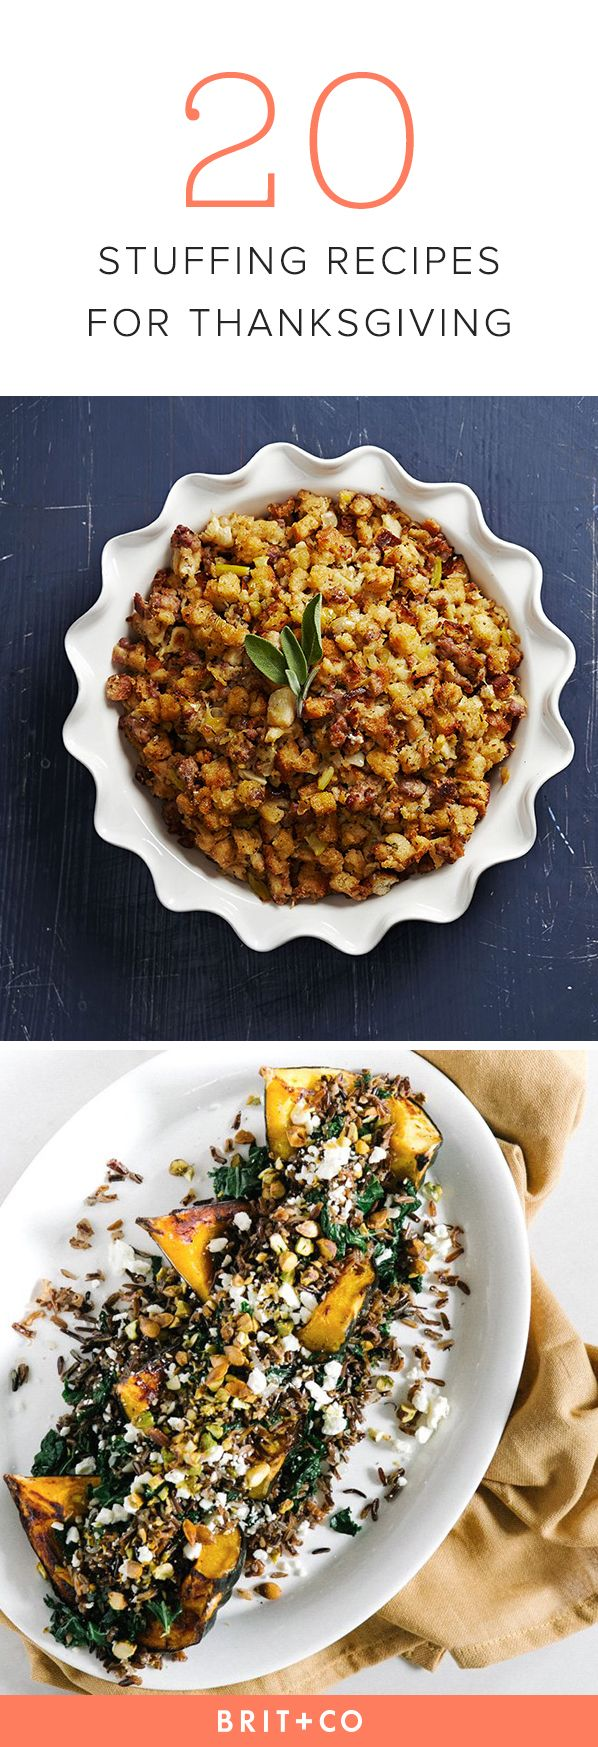 Whip up one of these stuffing recipes for Thanksgiving.